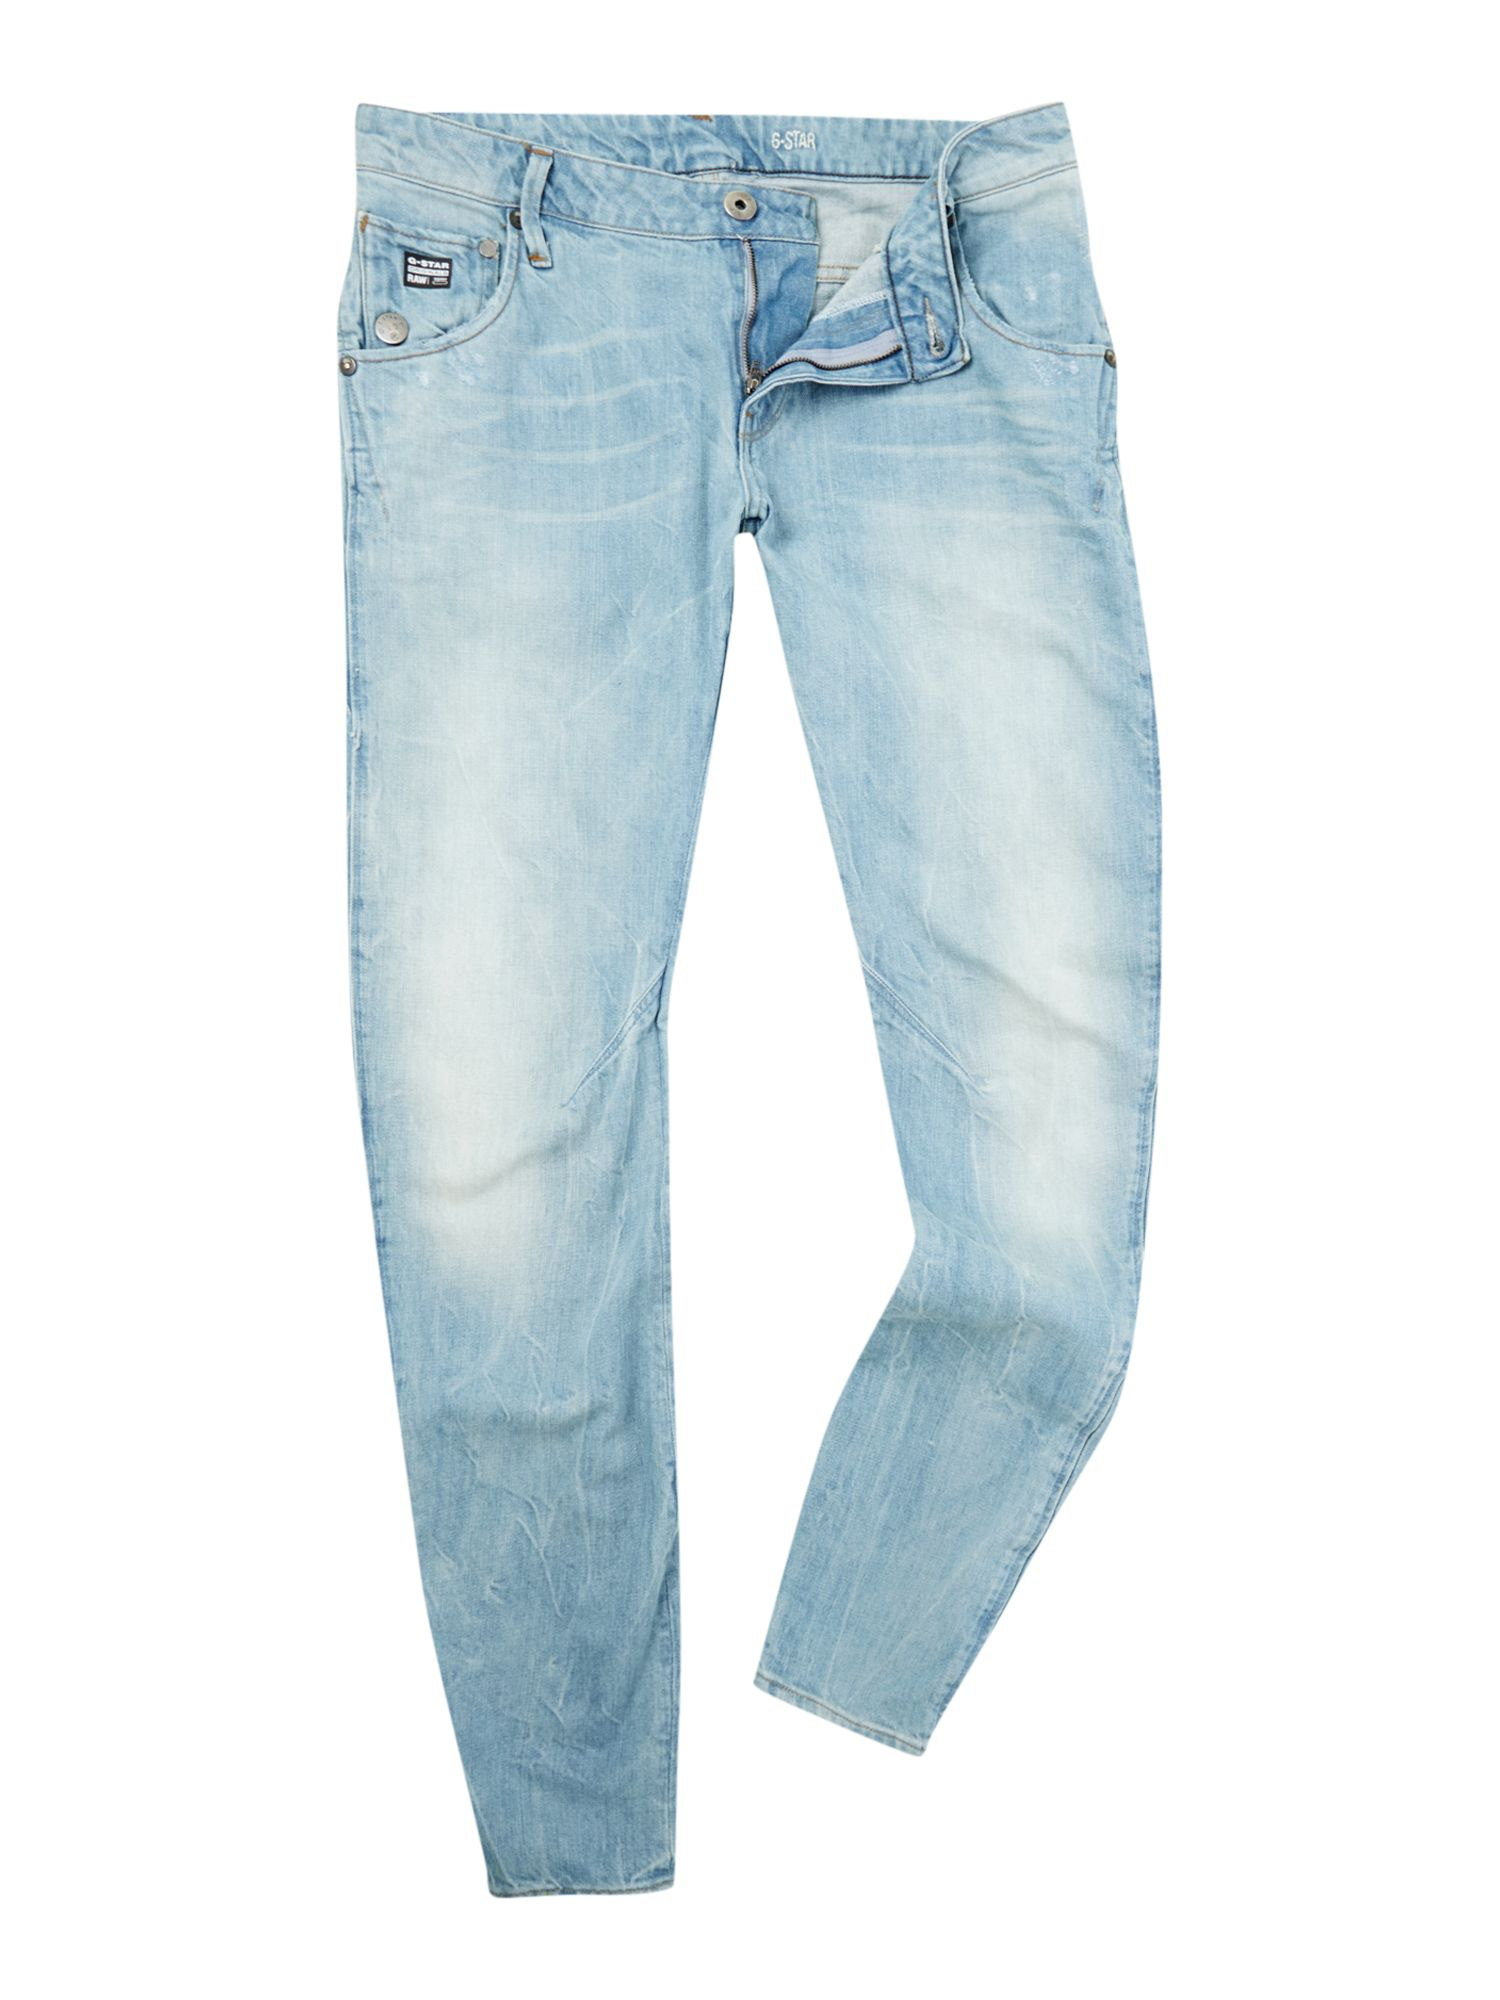 light wash jeans mens style photo - 1